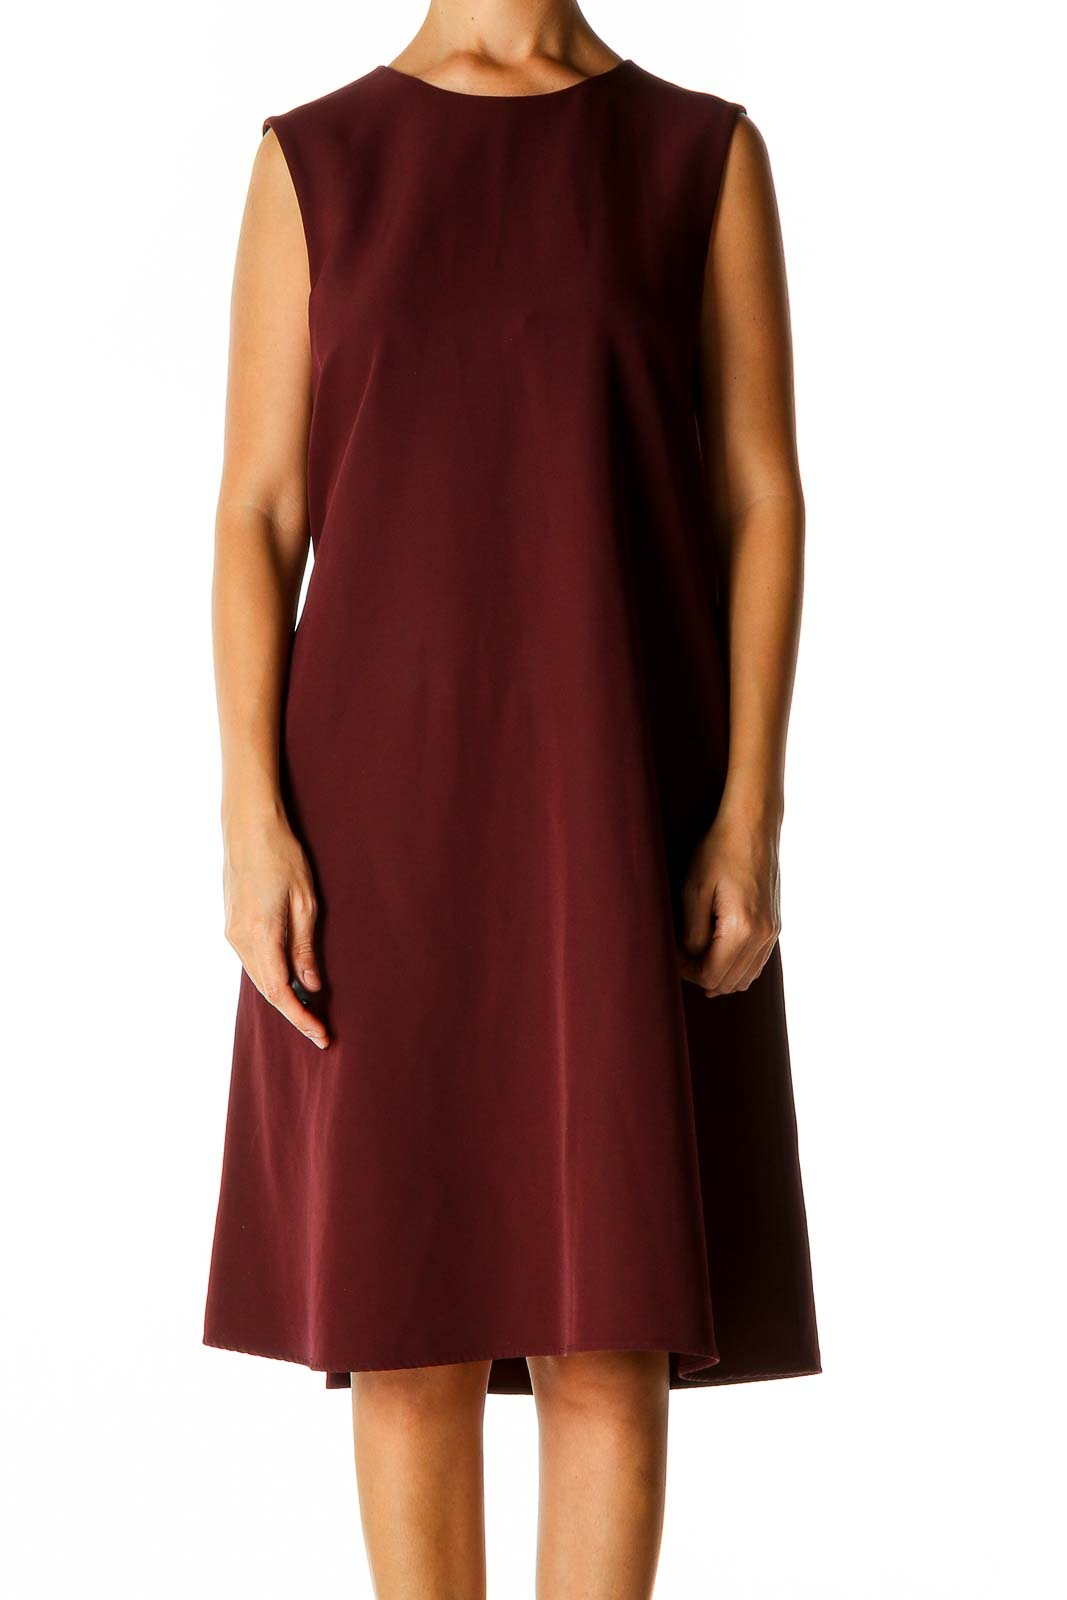 Red Solid Classic A-Line Dress Front